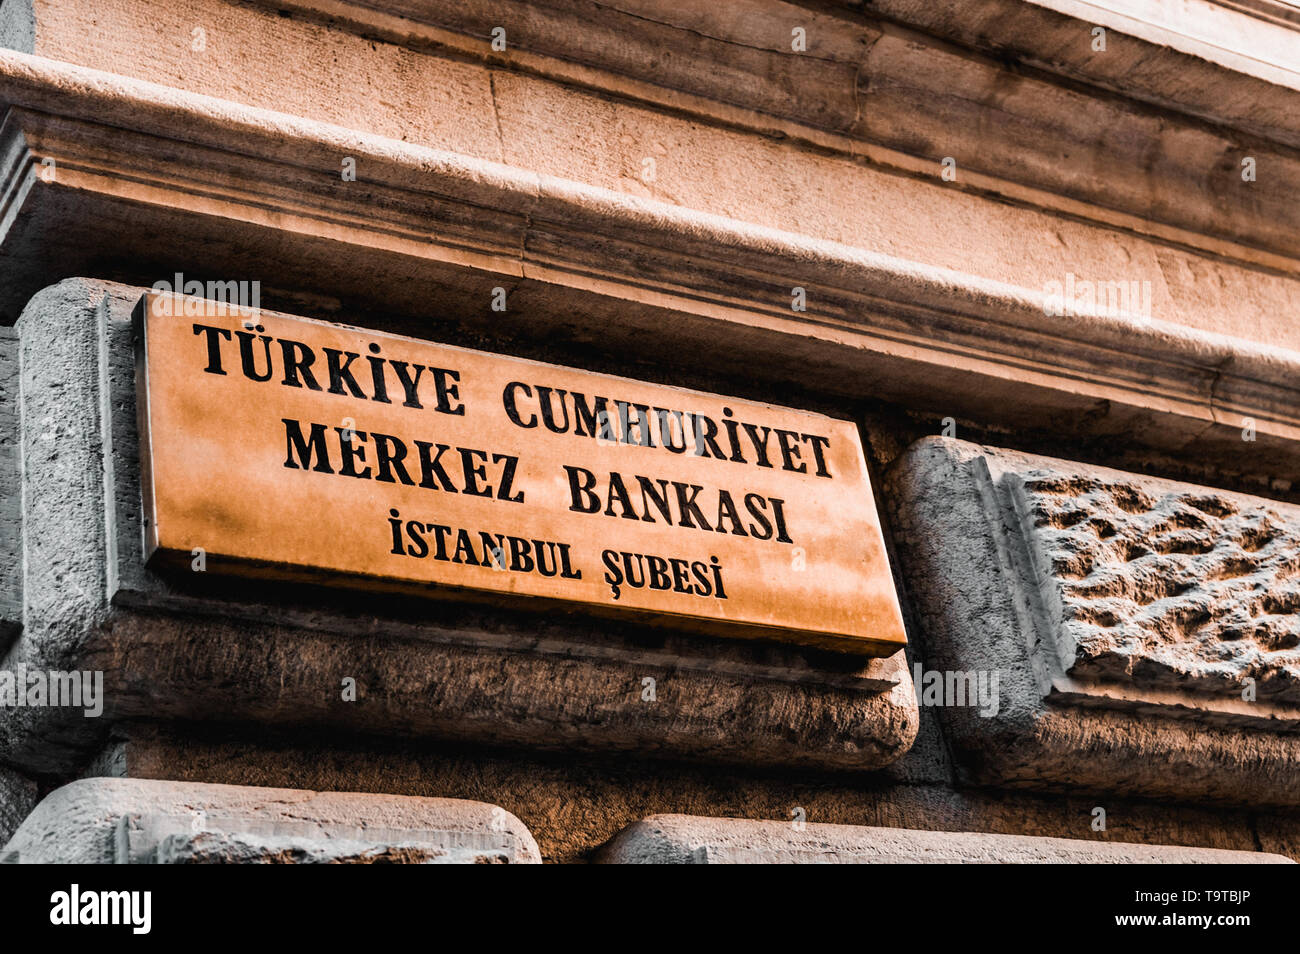 Istanbul, Turkey - January 06, 2018: Signboard of the Central Bank of the Republic of Turkey. - Stock Image